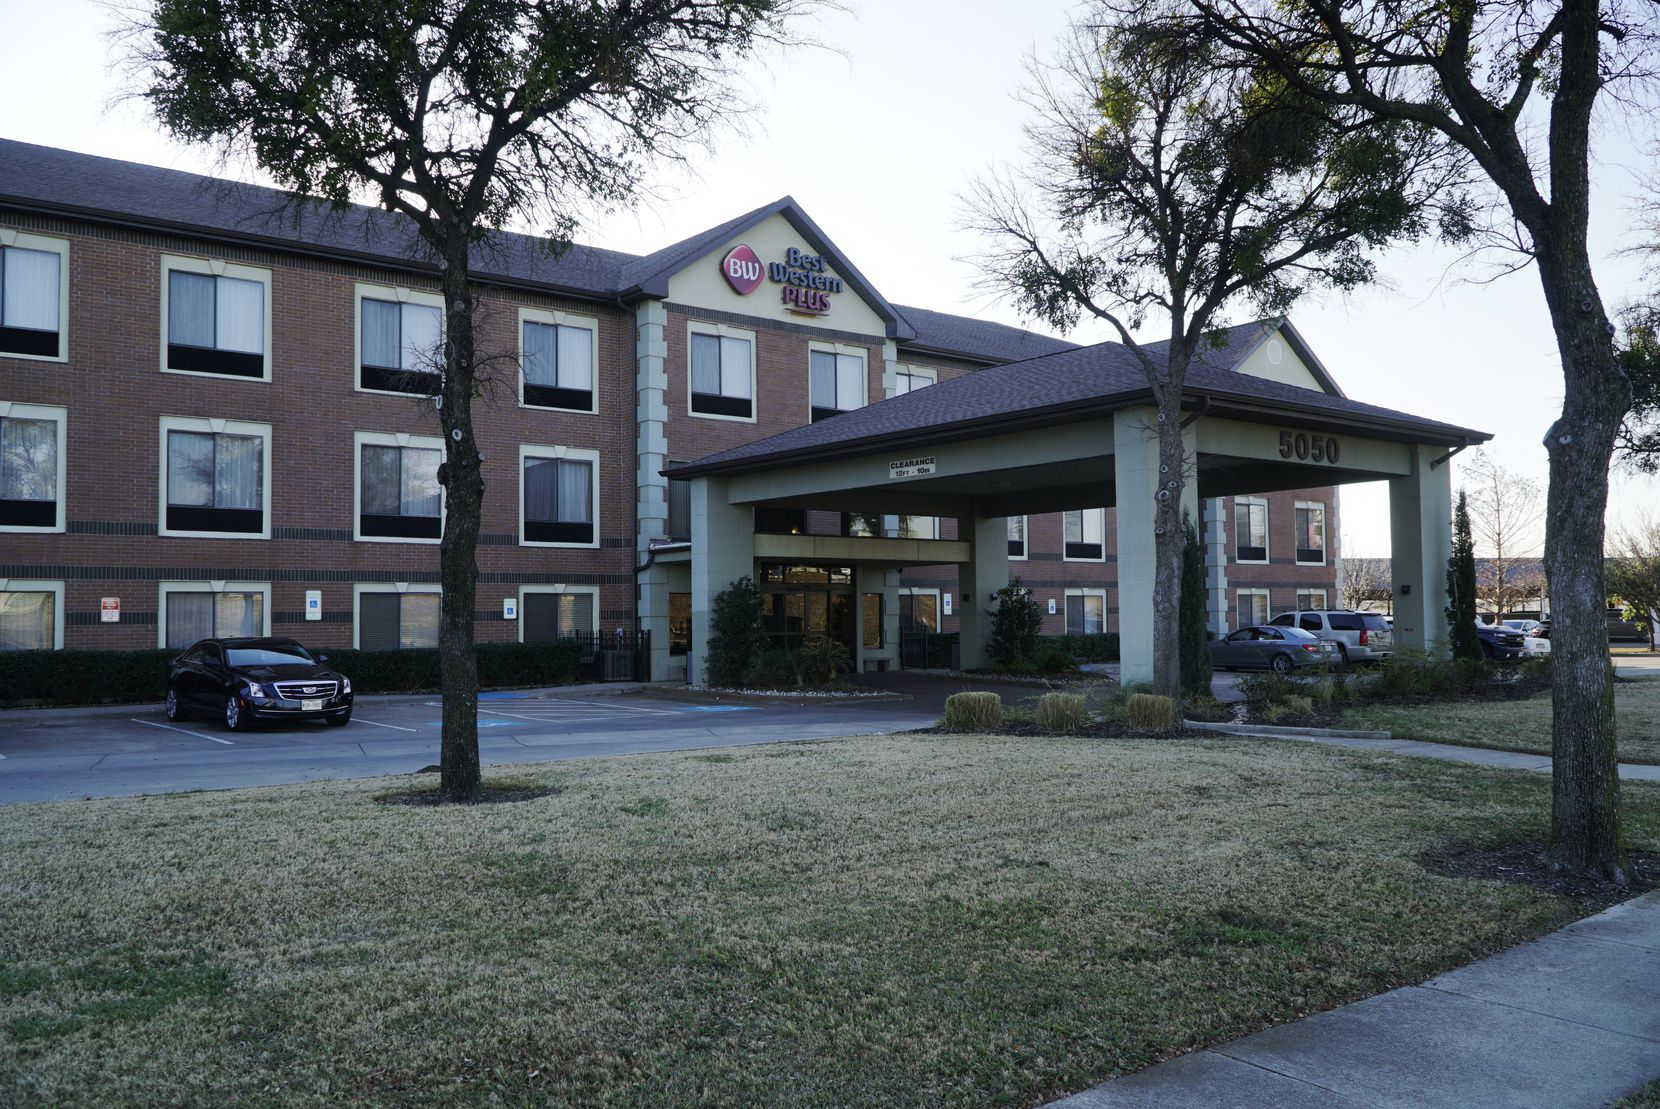 Best Western Plus DFW Airport Suites in Irving, Texas on Wednesday, December 12, 2019. (Lawrence Jenkins/Special Contributor)